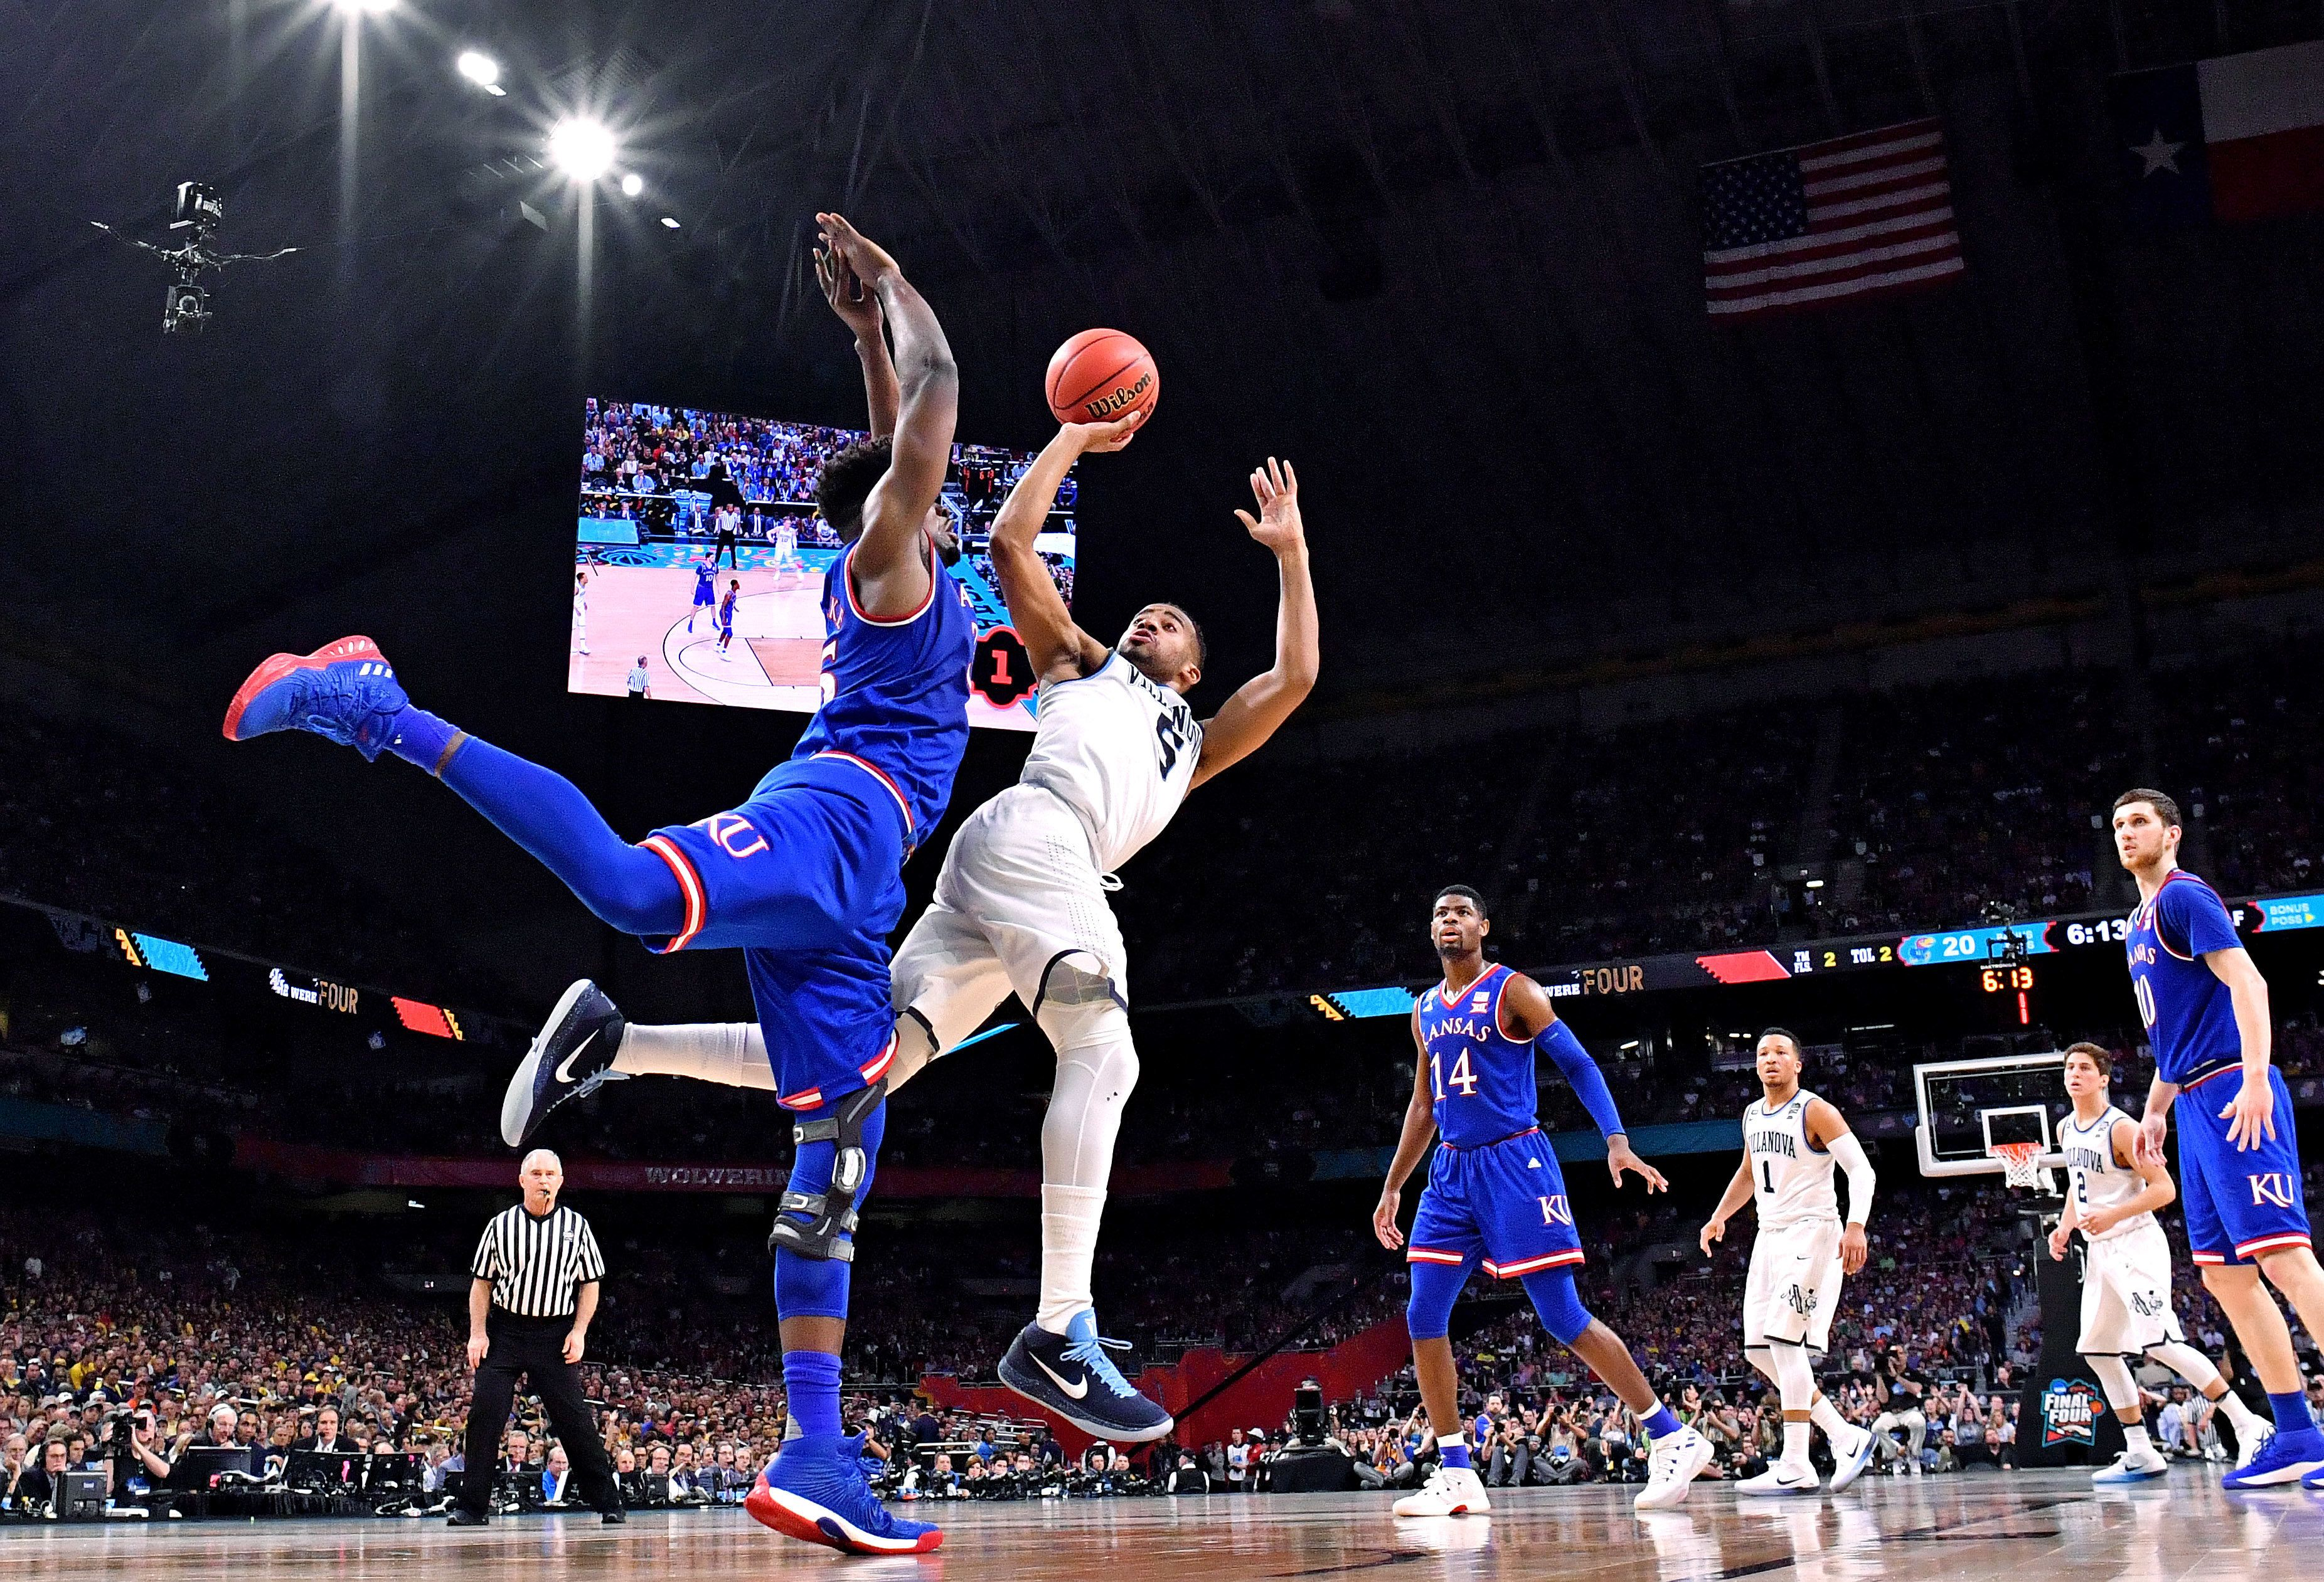 Villanova Wildcats guard Phil Booth shoots against Kansas Jayhawks center Udoka Azubuike during the first half of their